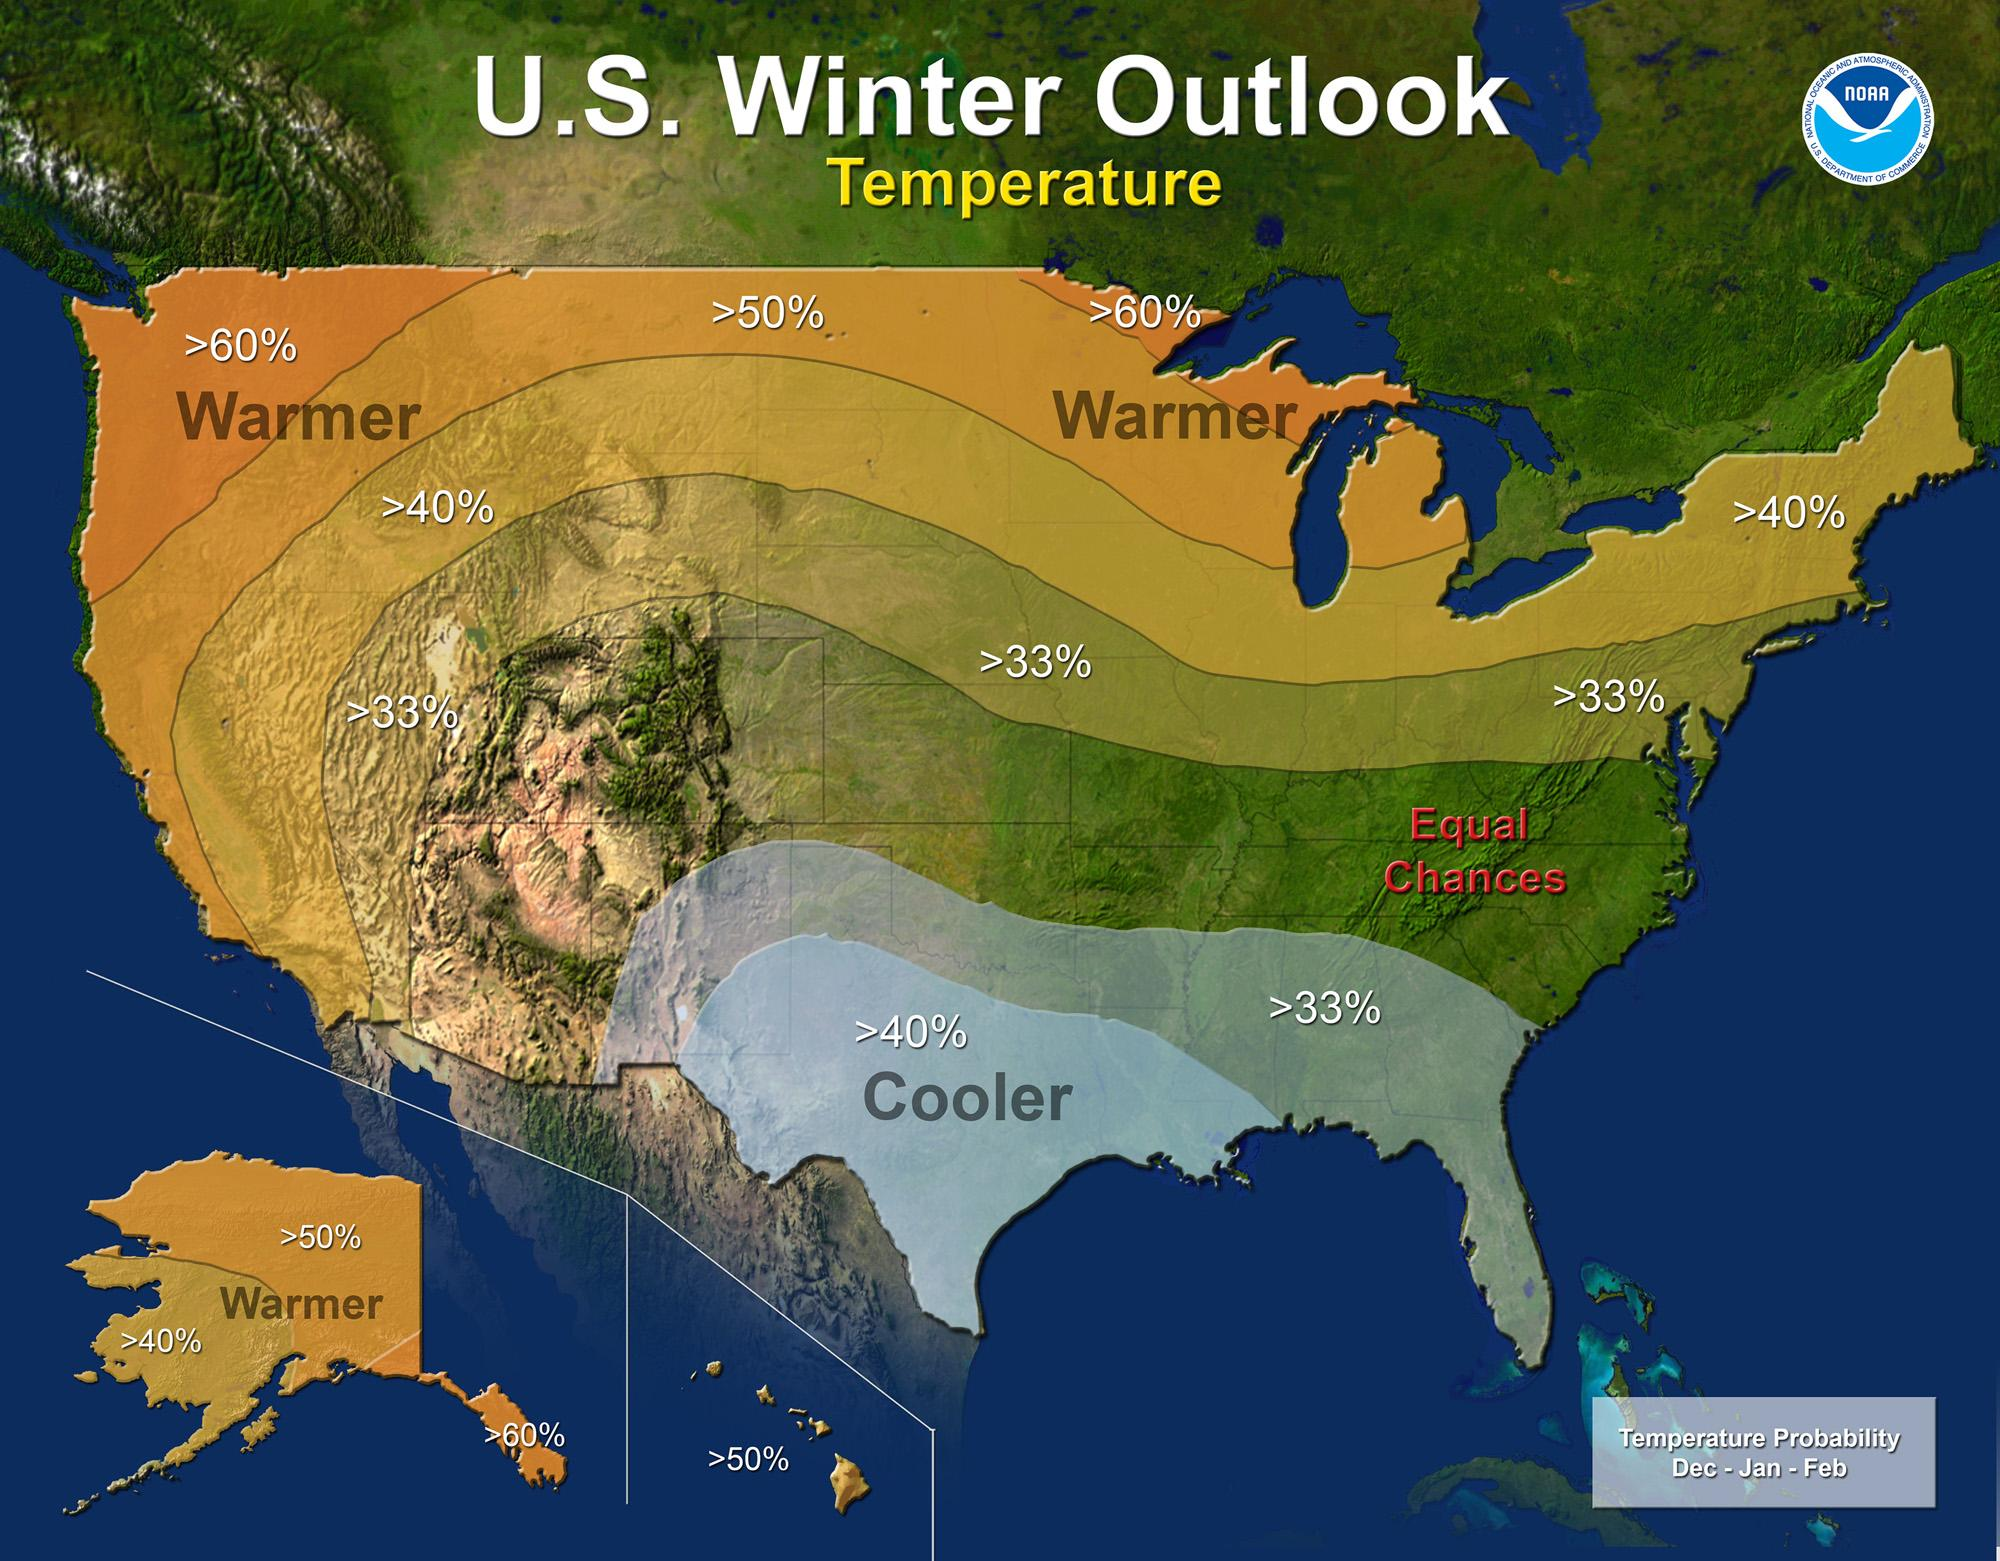 Outlook_map_temp2015_2F_2000